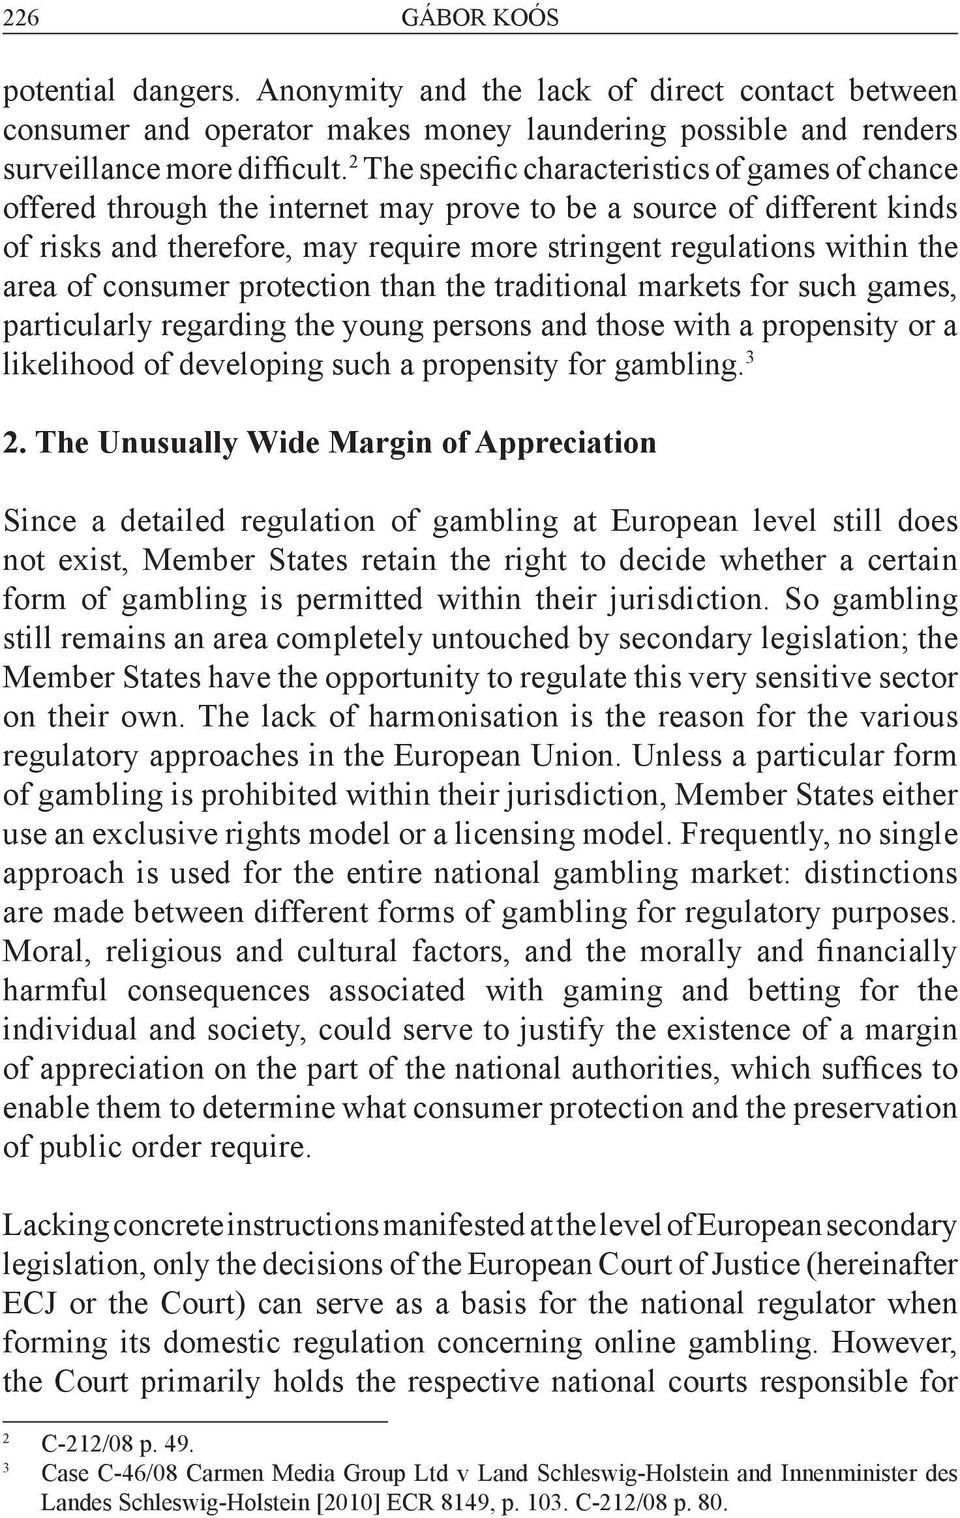 area of consumer protection than the traditional markets for such games, particularly regarding the young persons and those with a propensity or a likelihood of developing such a propensity for